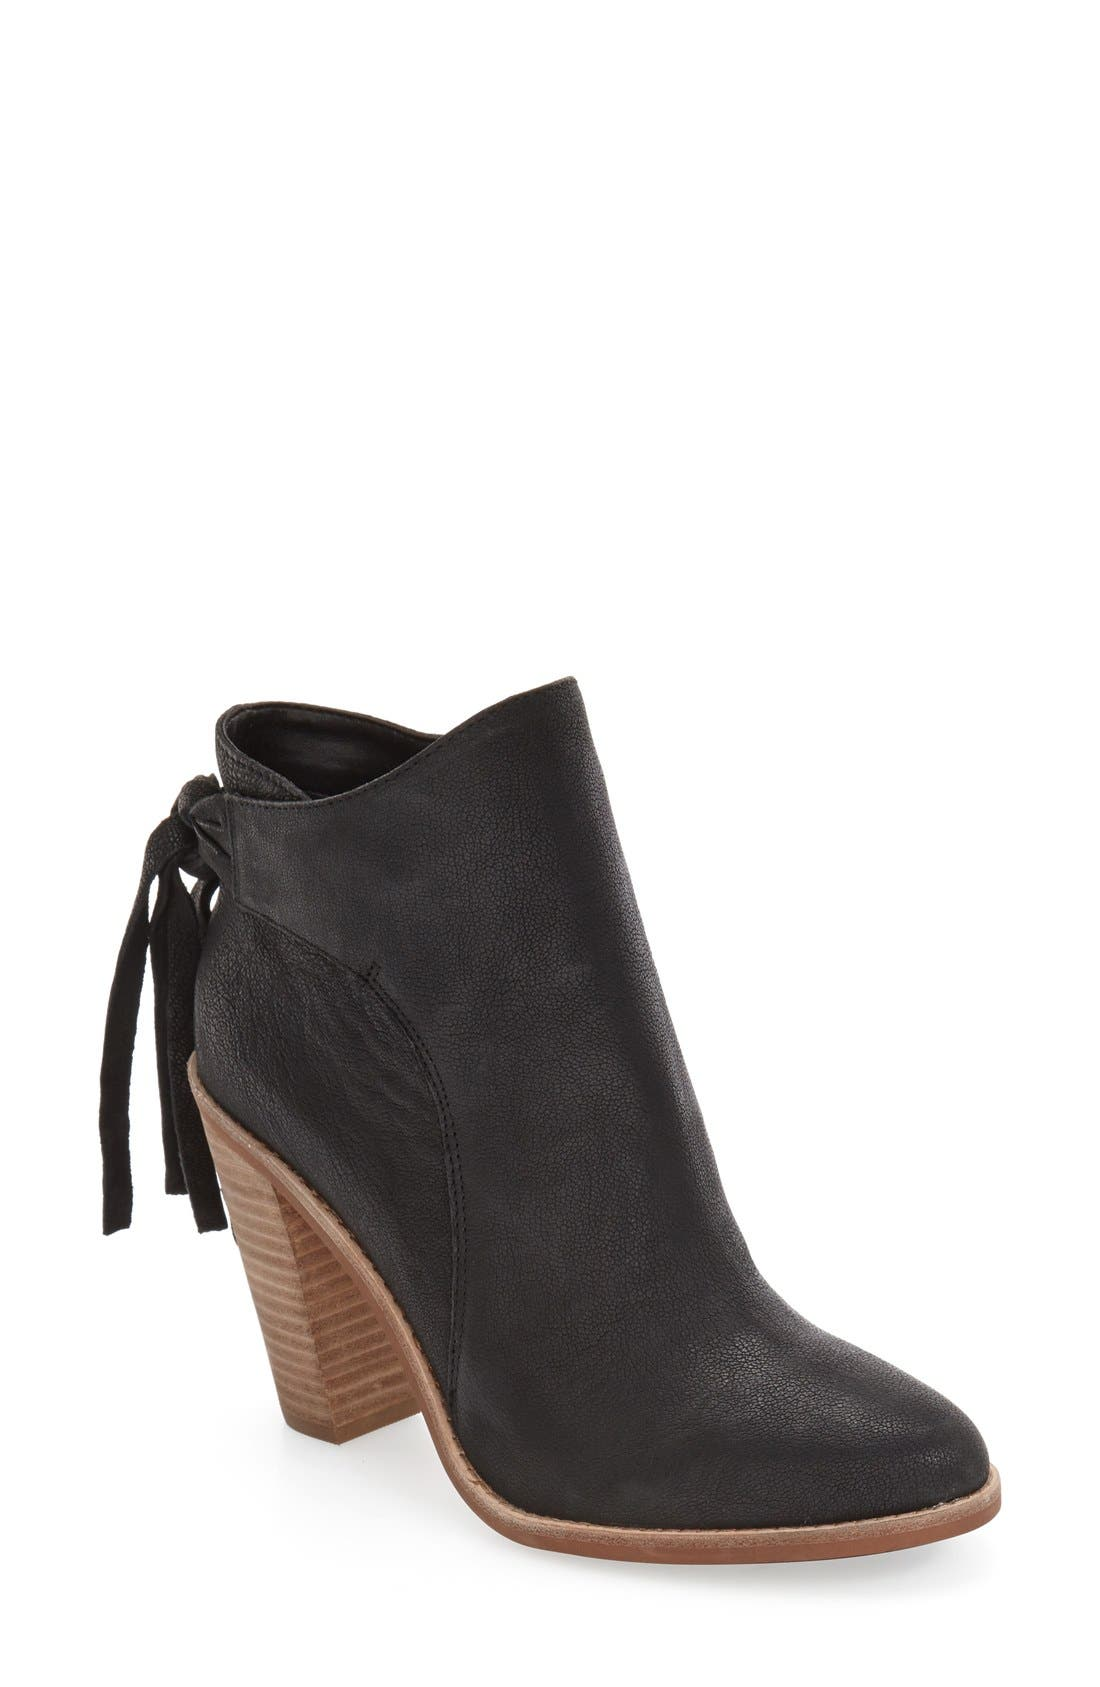 Vince Camuto Linford Ankle Bootie - WOMEN - BROWN SUEDE 0